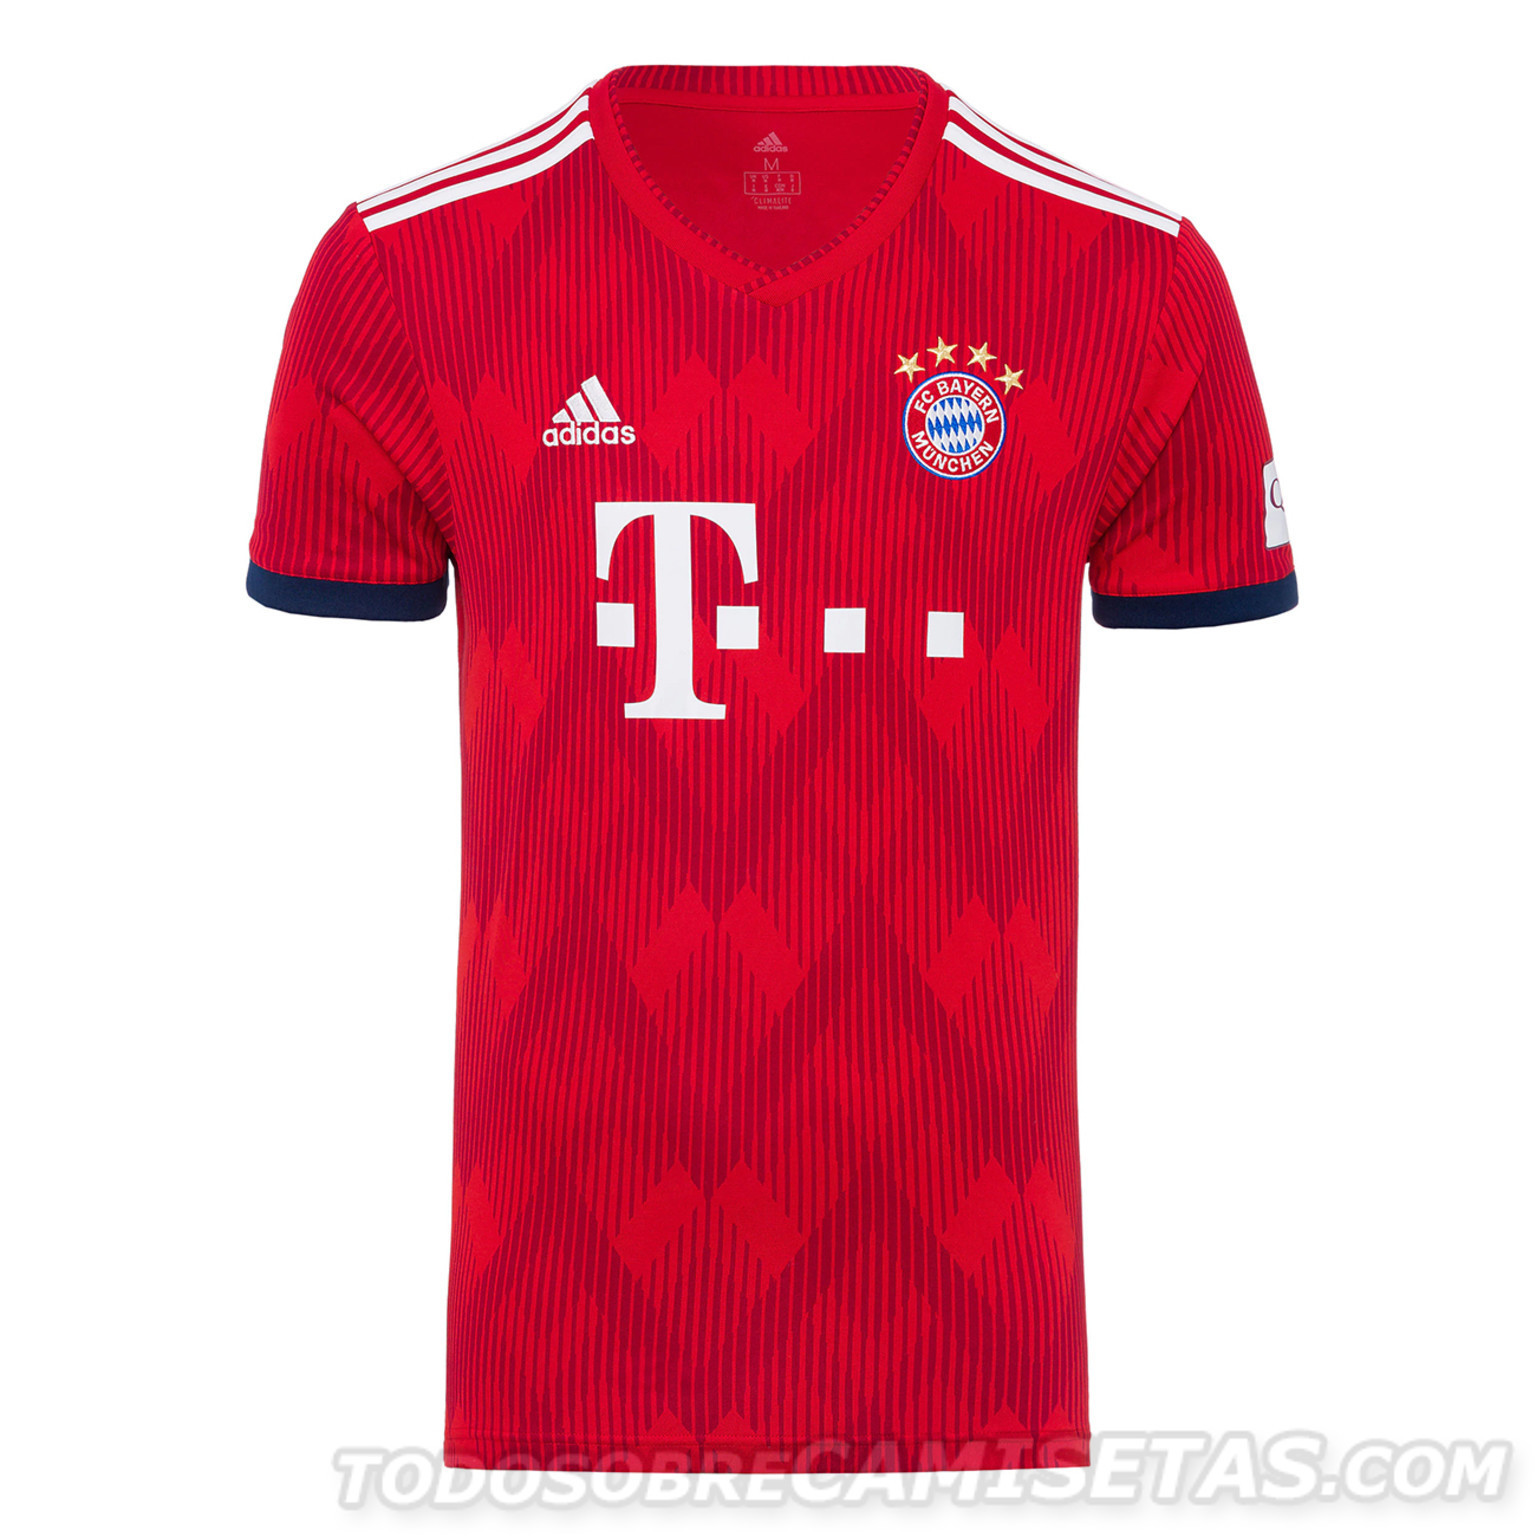 Bayern-Munich-2018-19-adidas-new-home-kit-6.jpg